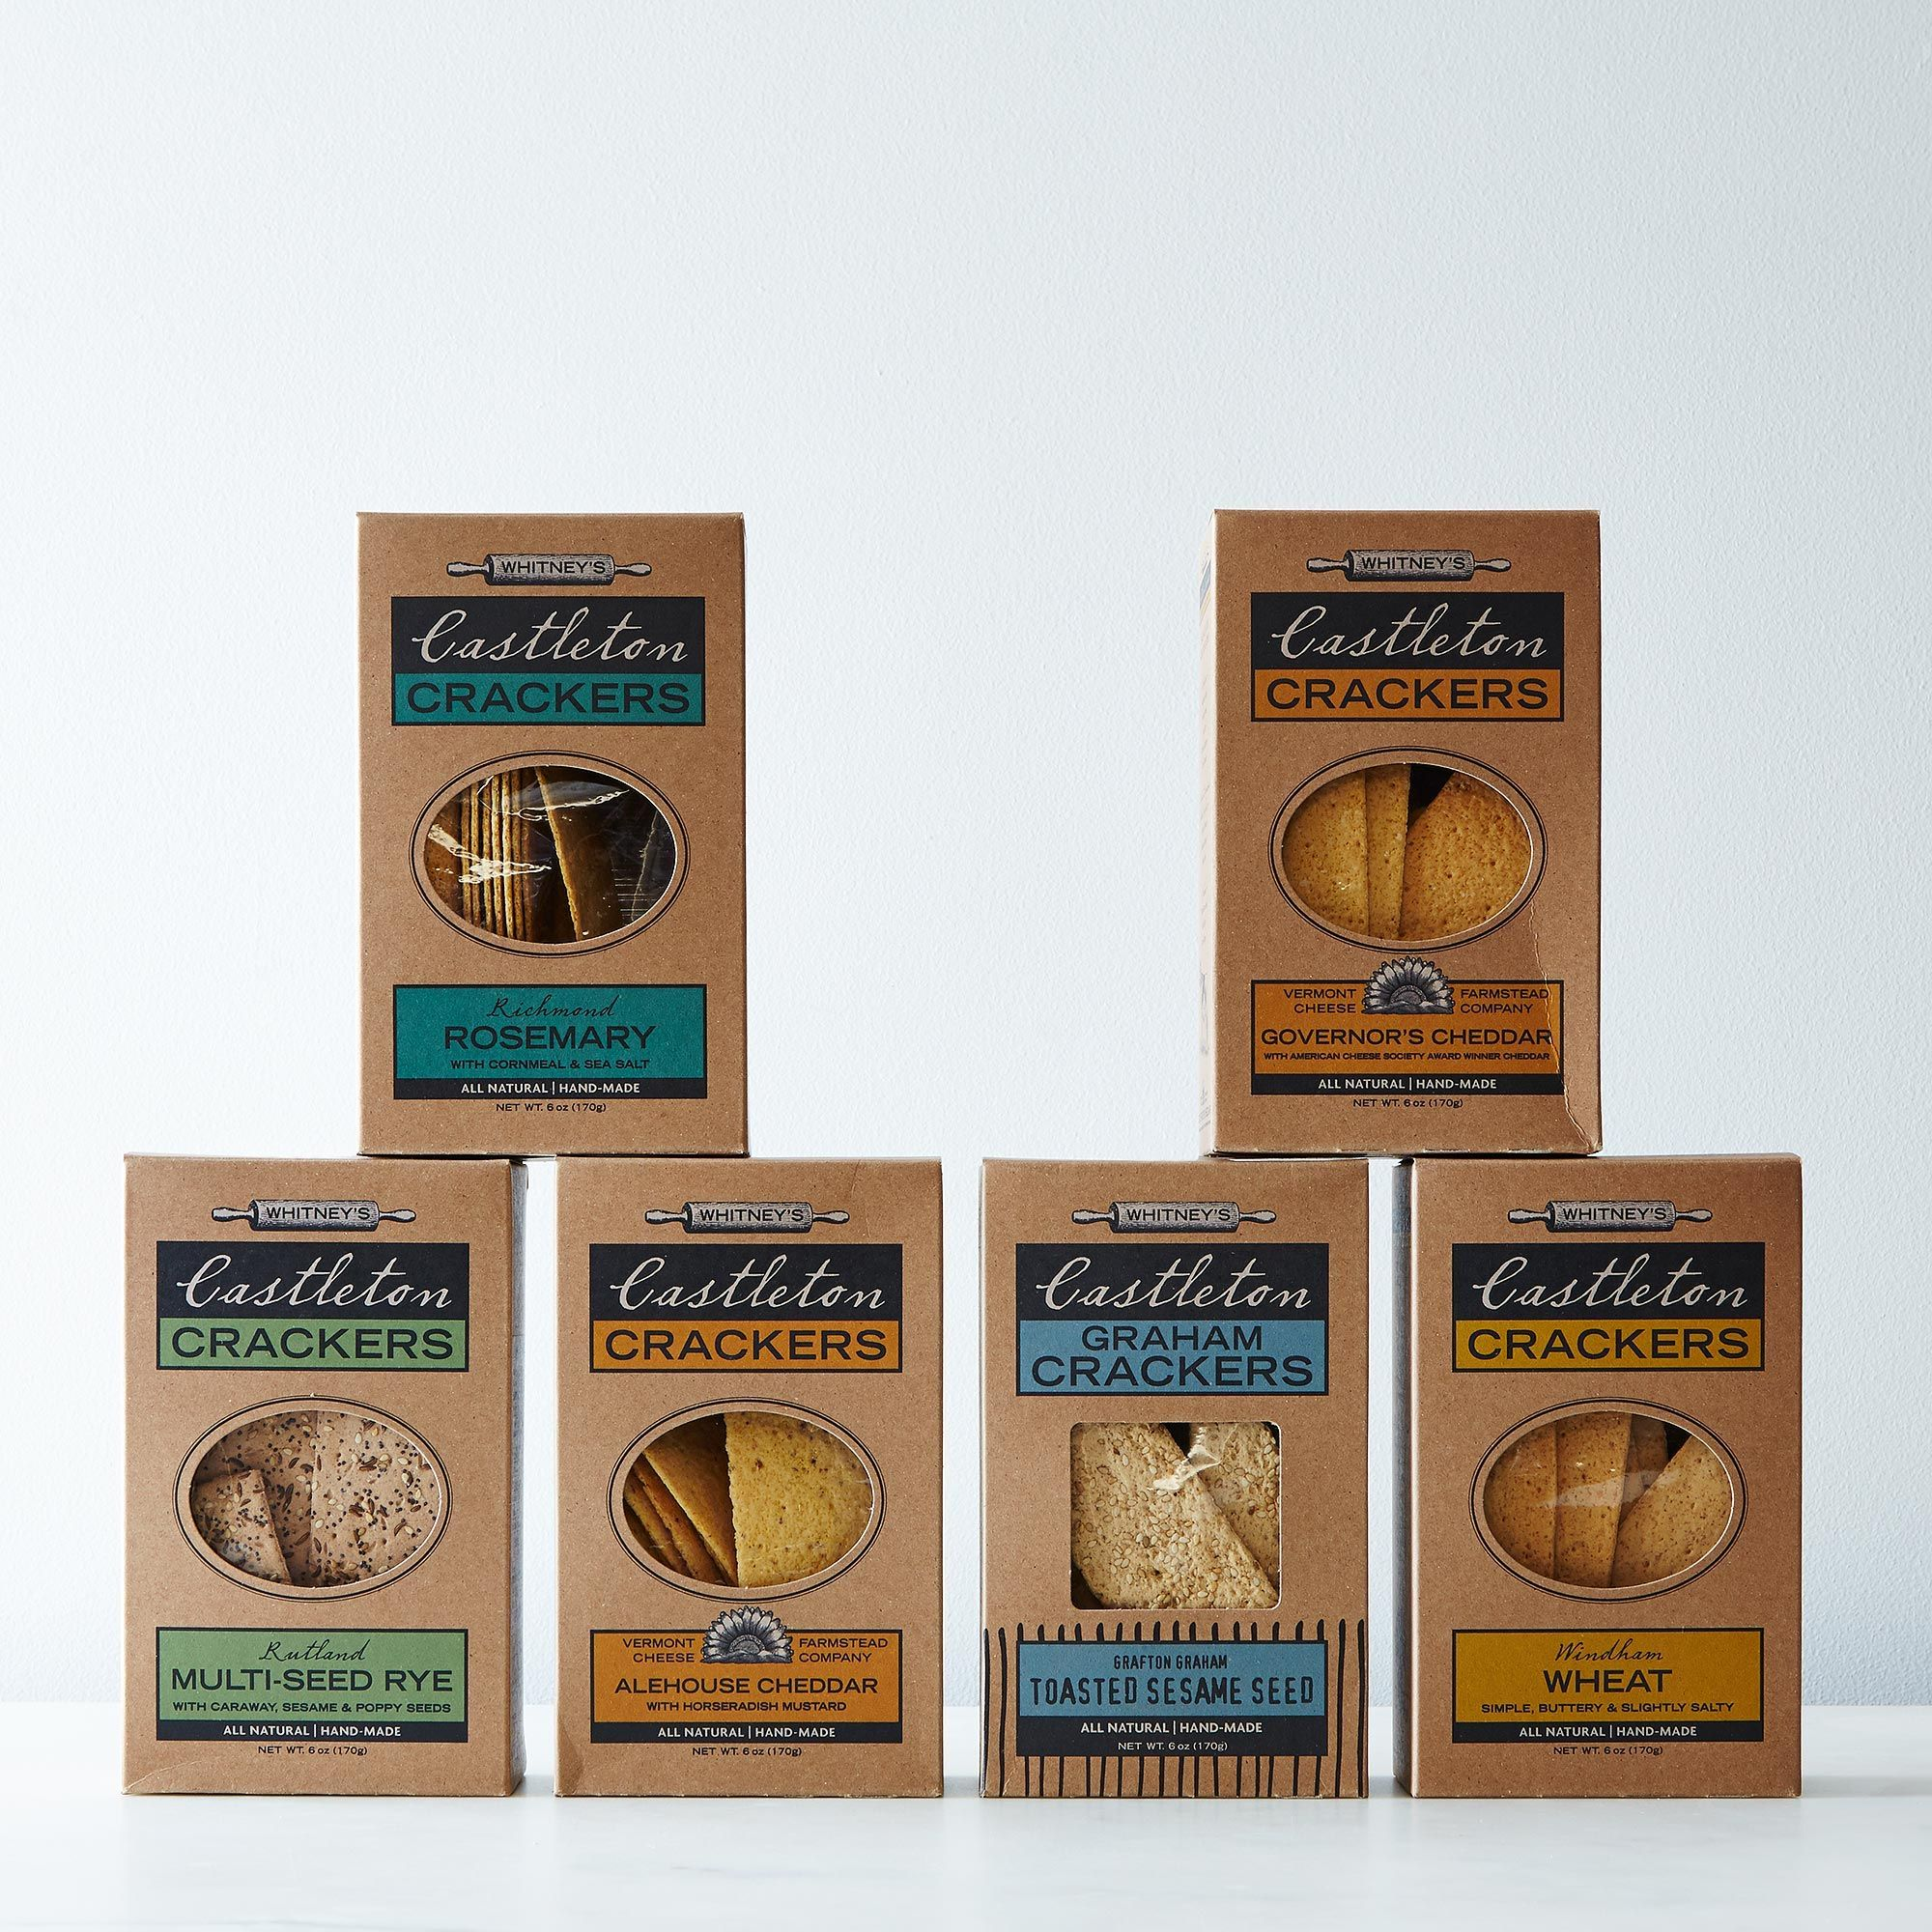 8085adaf 1bb3 4d9c 8680 12c1c7fd3898  2014 0818 castleton vermont artisan cheese crackers family 022